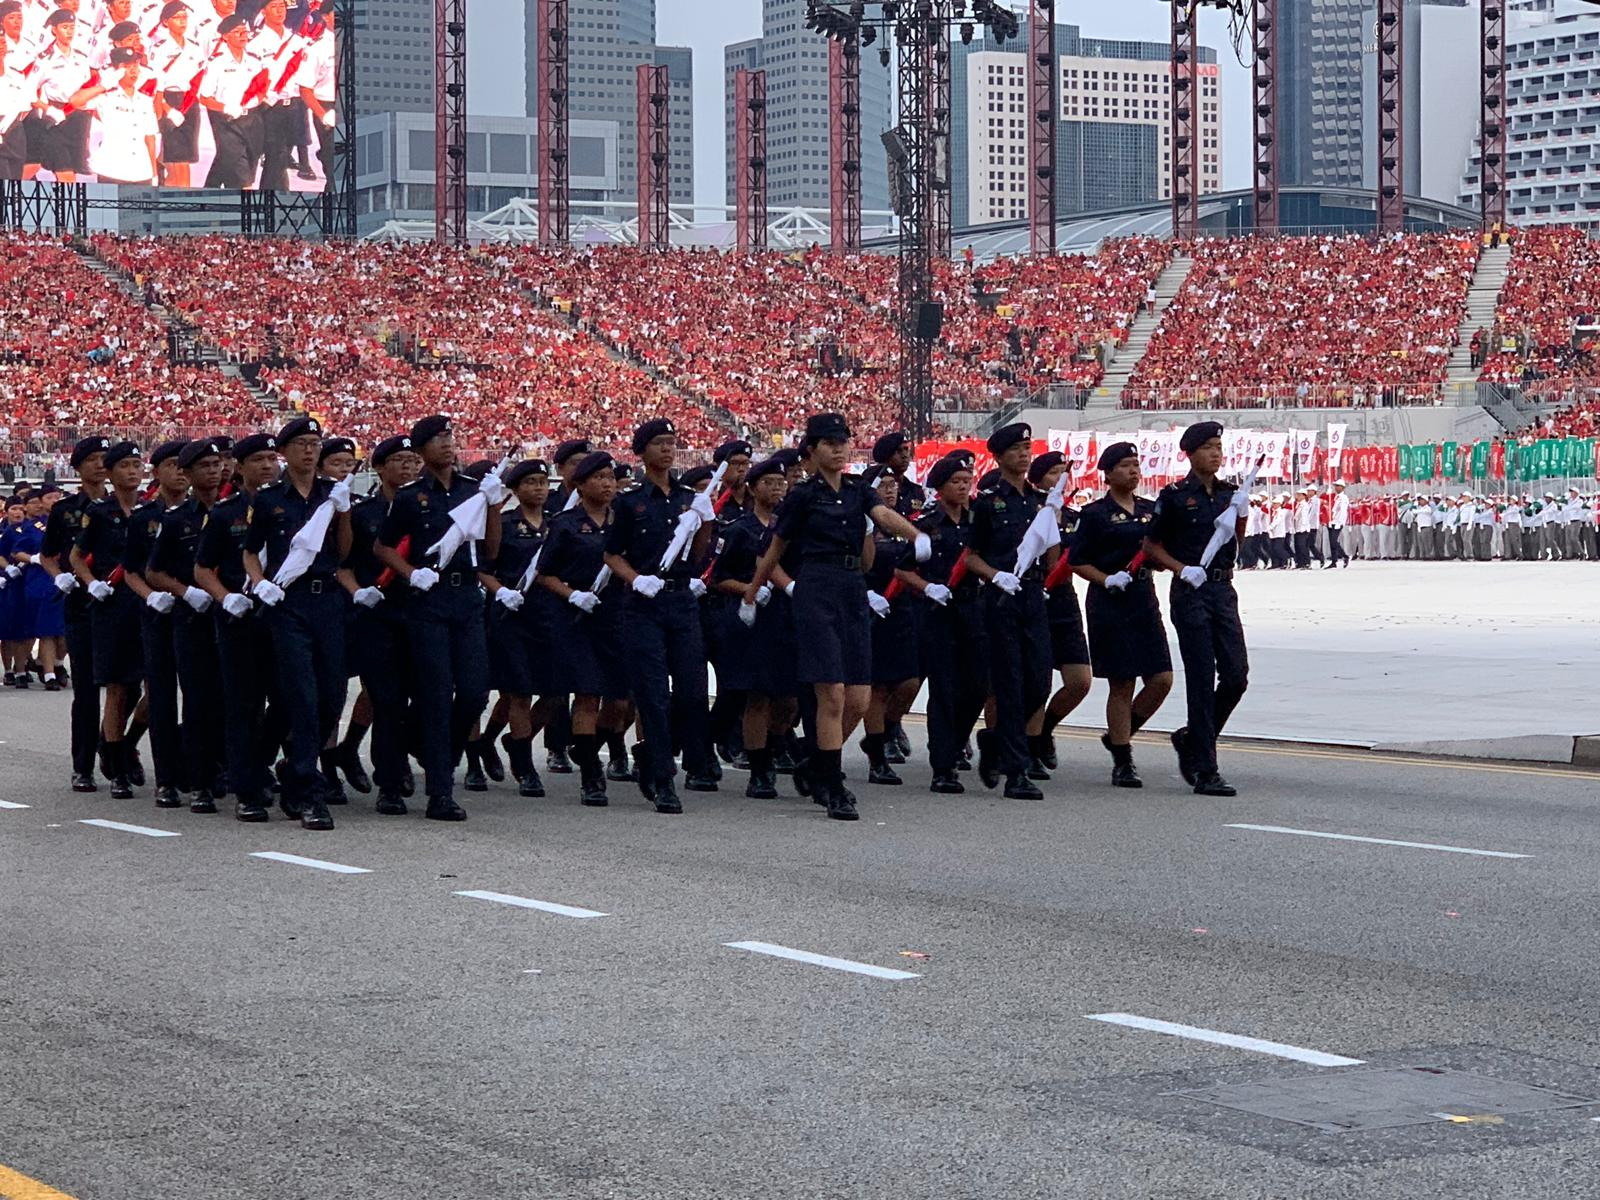 The parade was last held at the Padang in 2015. Photo courtesy: Connected to India